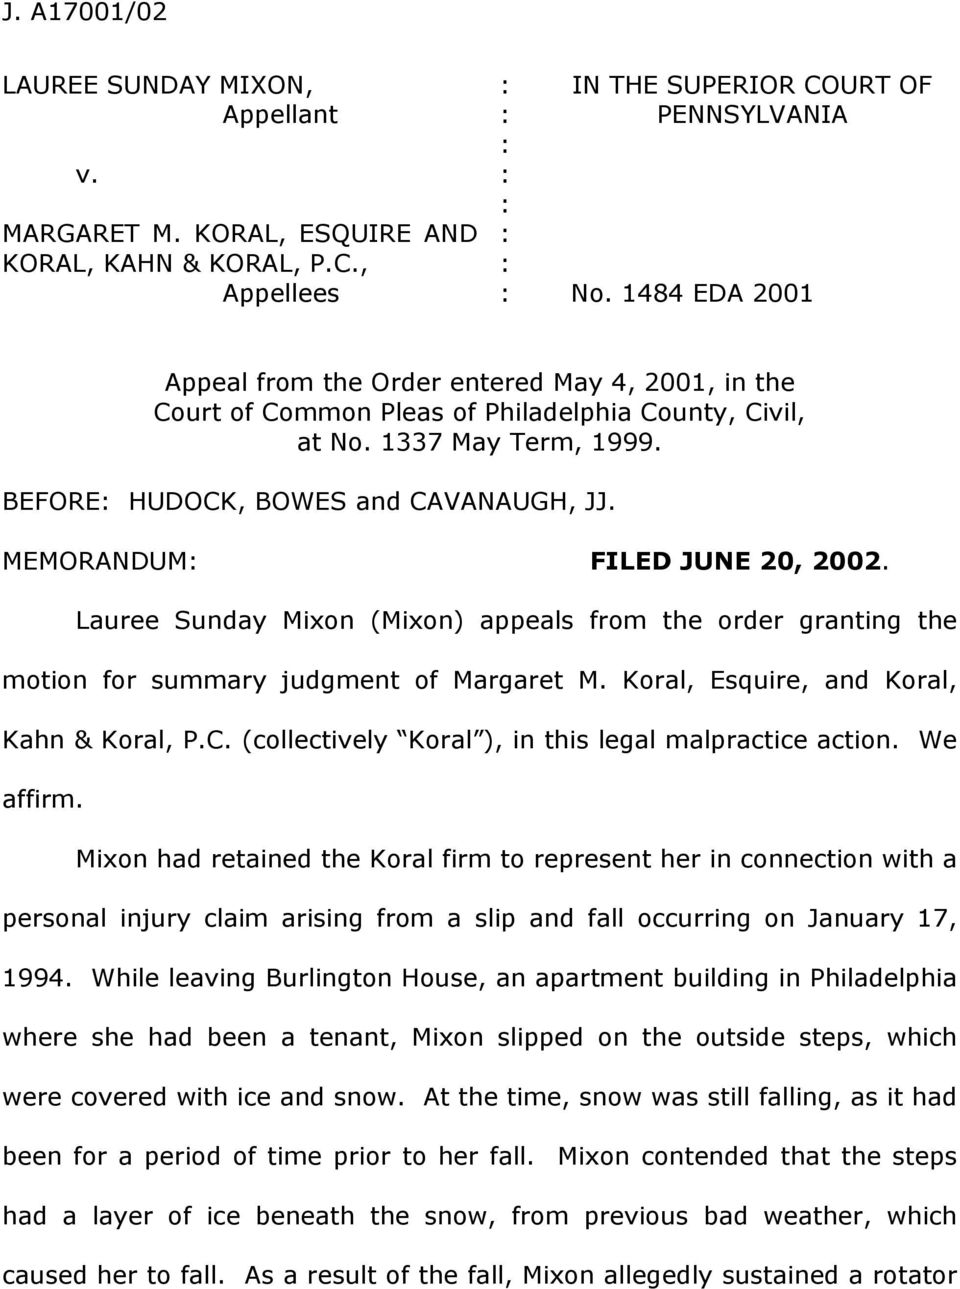 MEMORANDUM: FILED JUNE 20, 2002. Lauree Sunday Mixon (Mixon) appeals from the order granting the motion for summary judgment of Margaret M. Koral, Esquire, and Koral, Kahn & Koral, P.C.